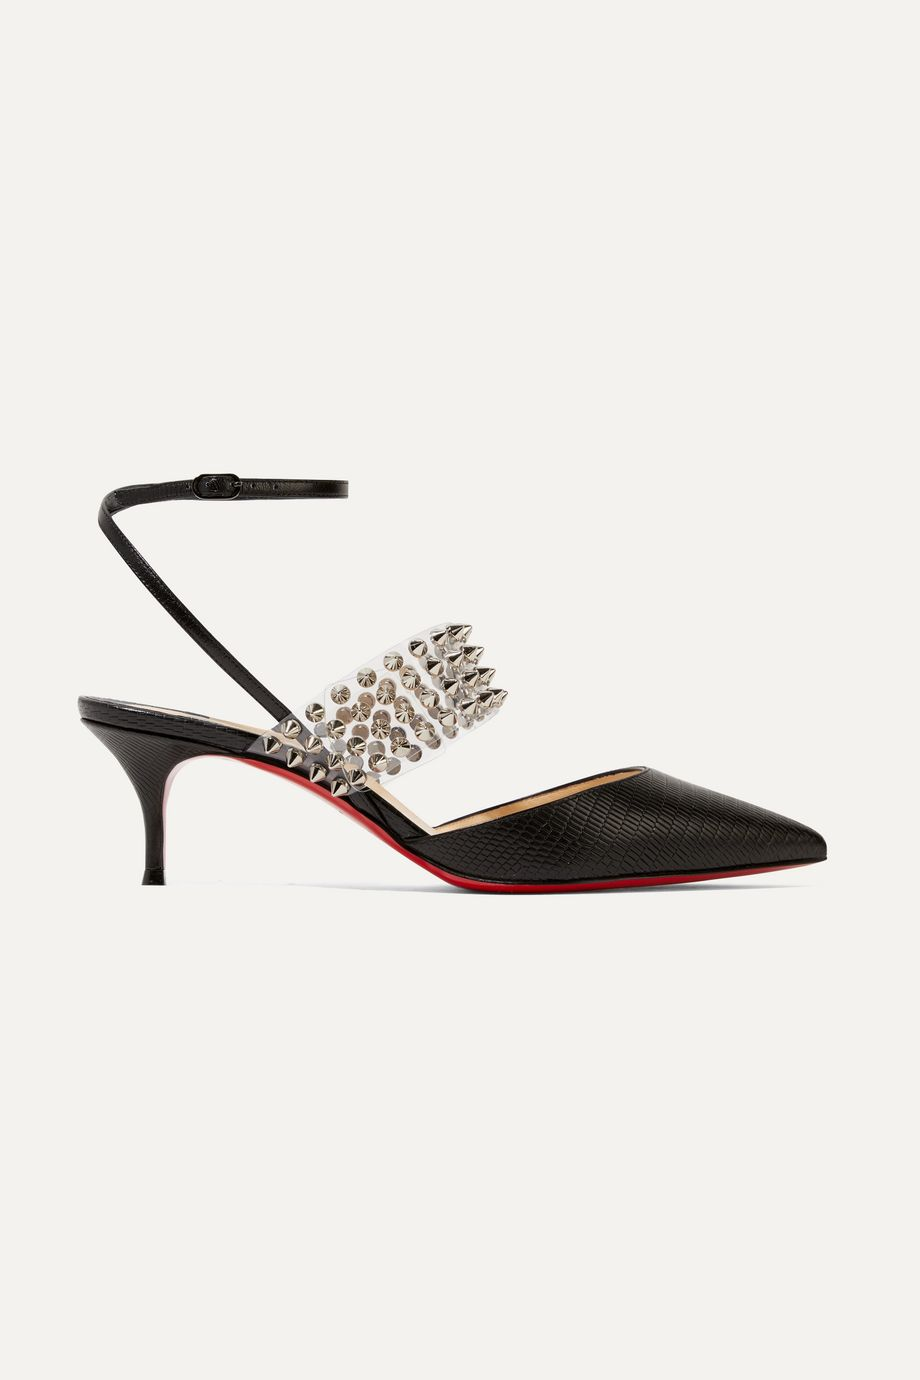 Christian Louboutin Levita 55 spiked PVC and lizard-effect leather pumps